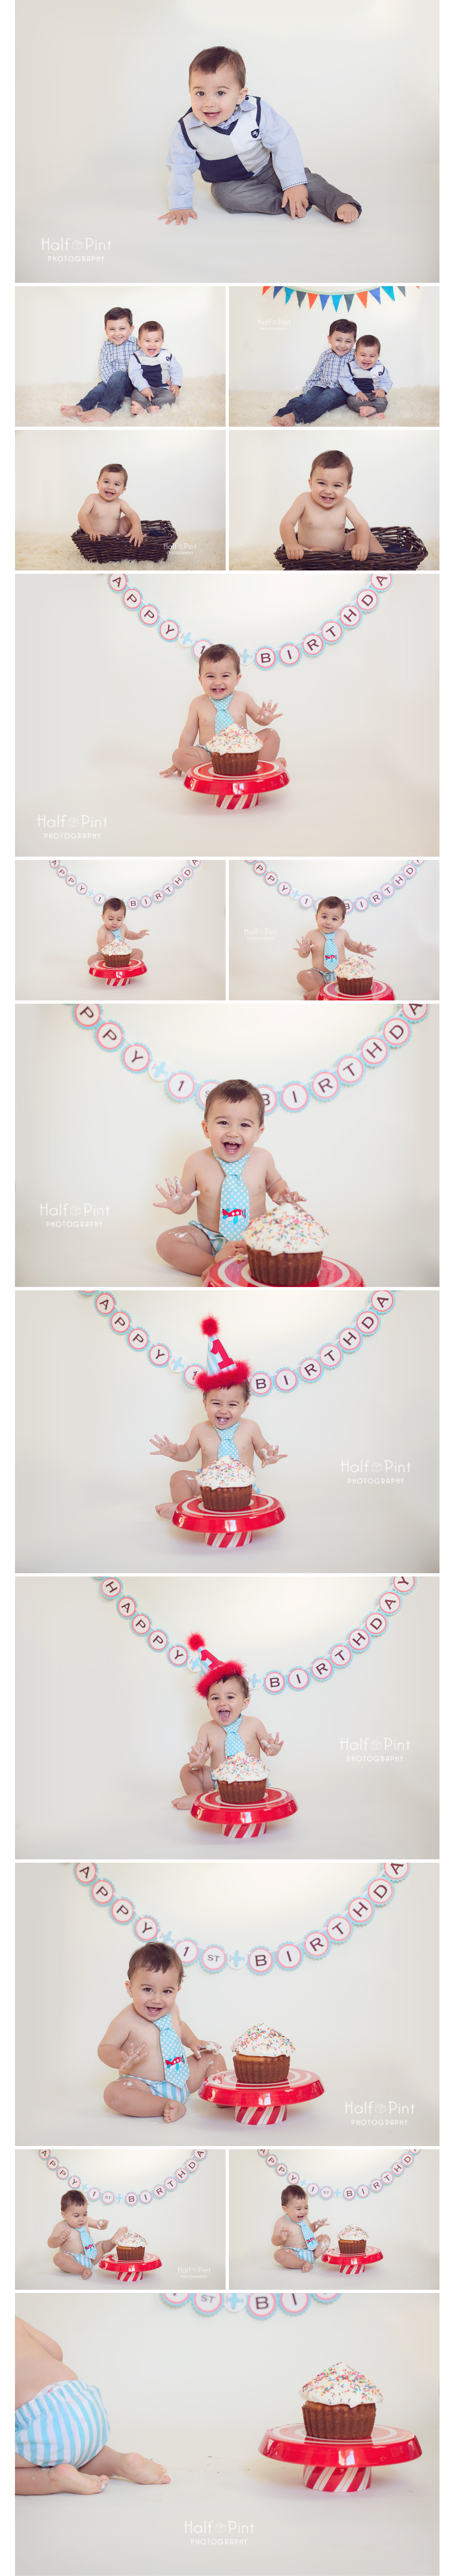 bergen-county-nj-baby-and-child-photographer